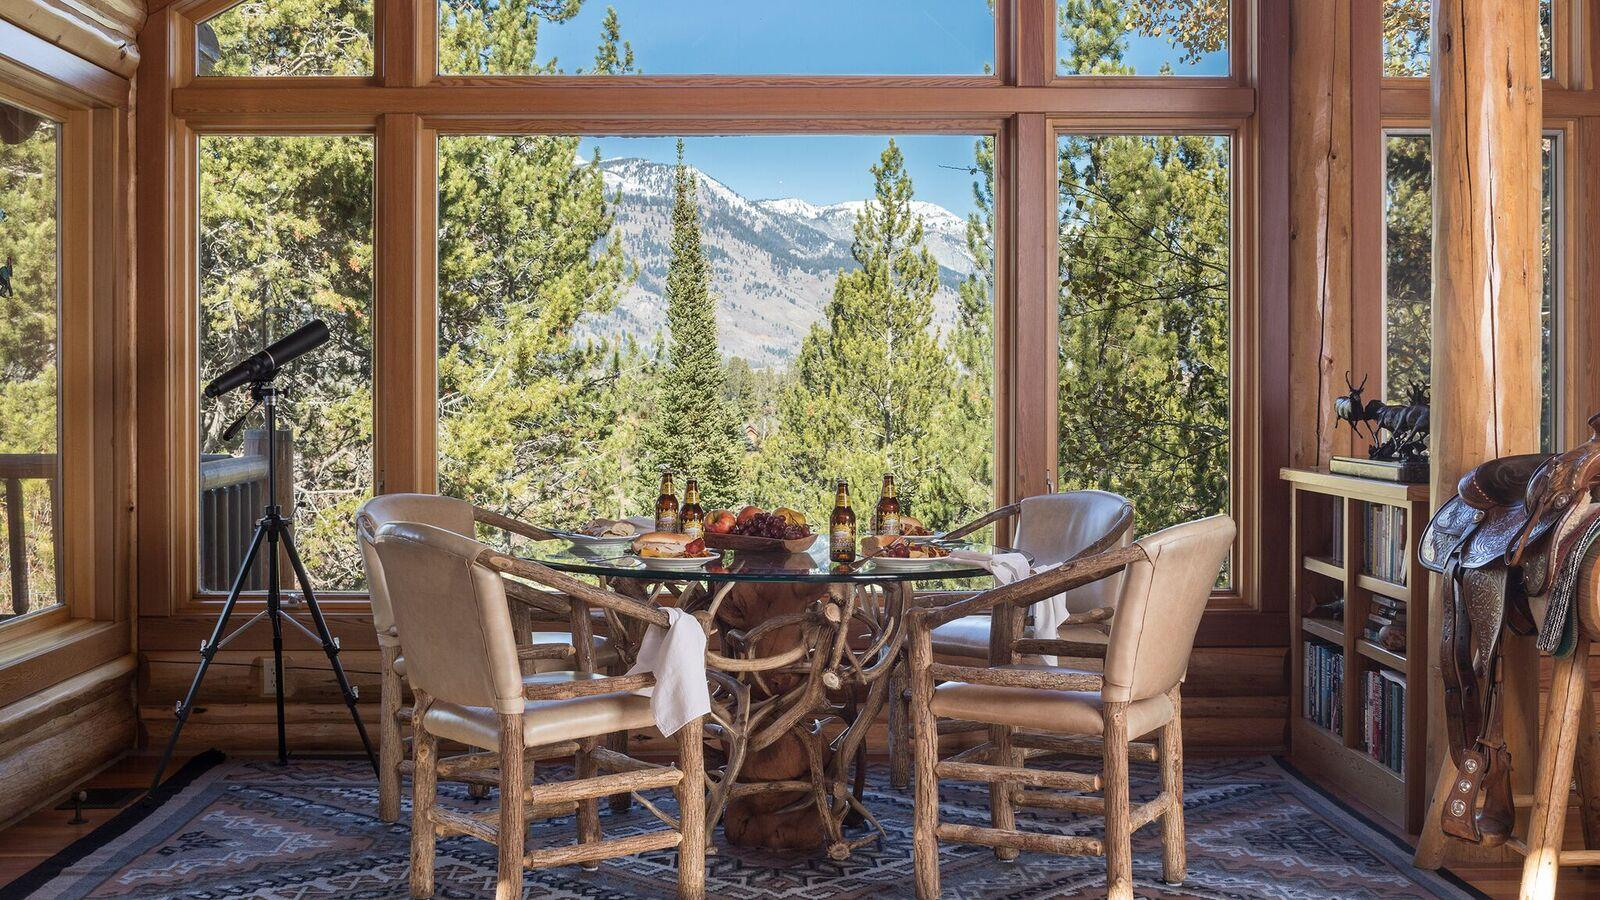 Property Image 1 - Secluded Cabin in the Woods with Views of the Teton Range